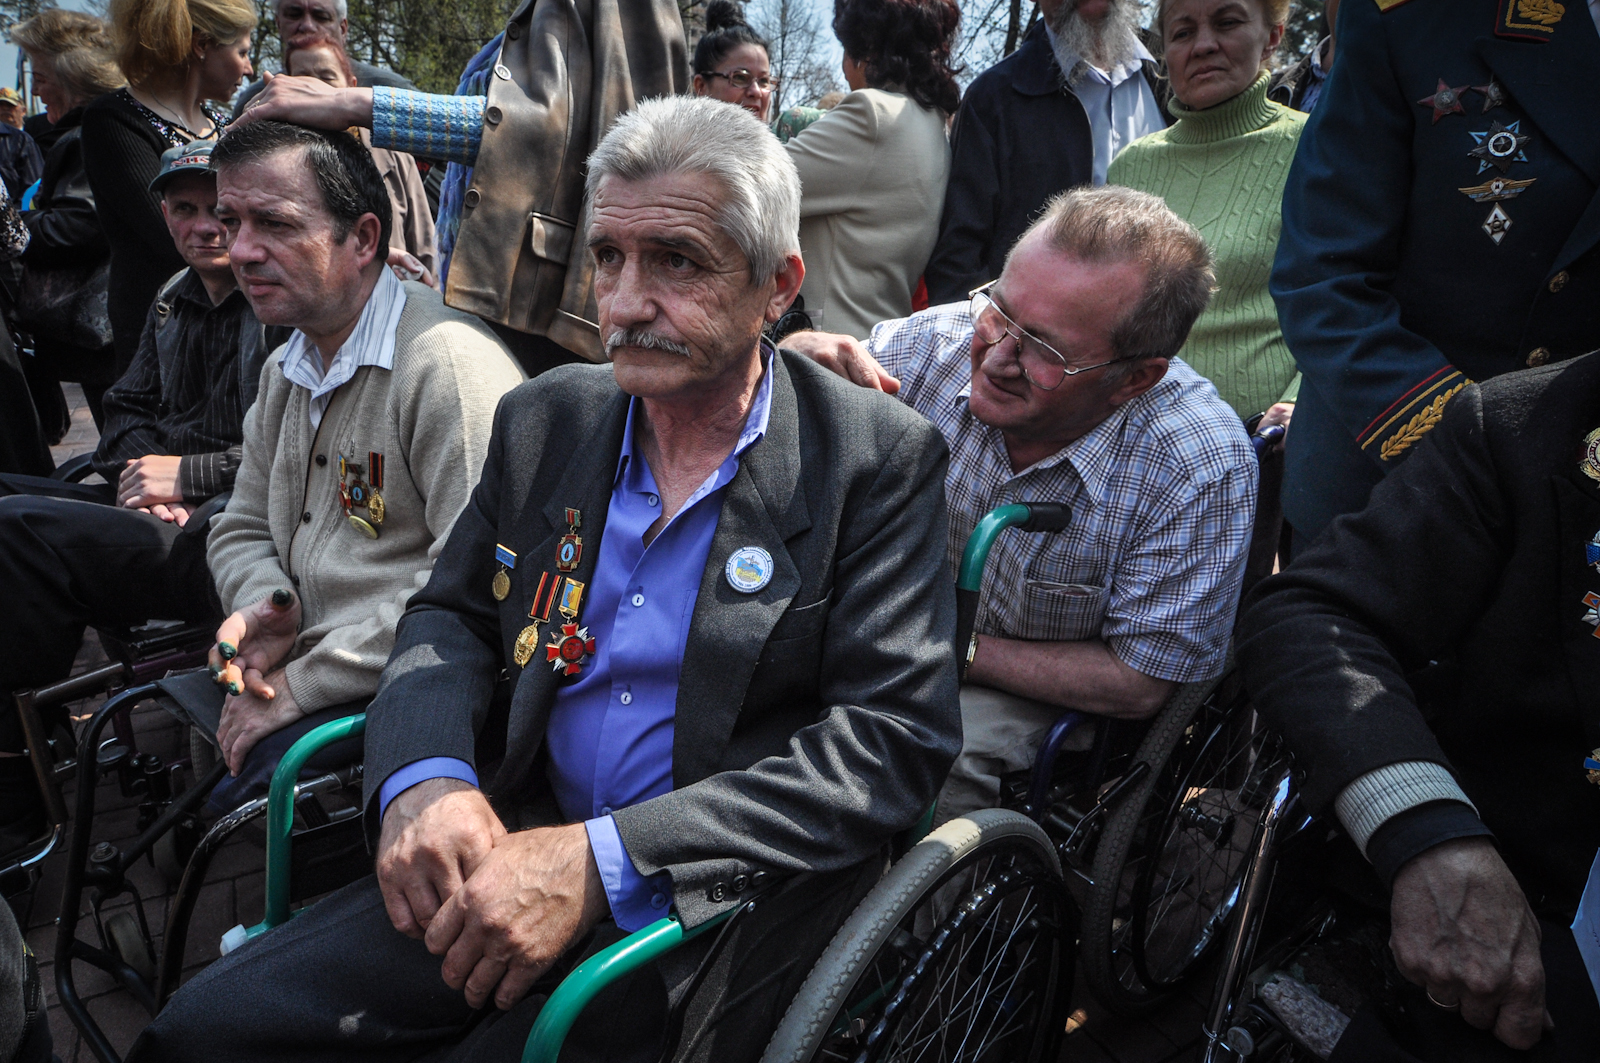 Disabled liquidators at a memorial to the Chernobyl disaster. Many feel abandoned by the State, receiving little or no compensation